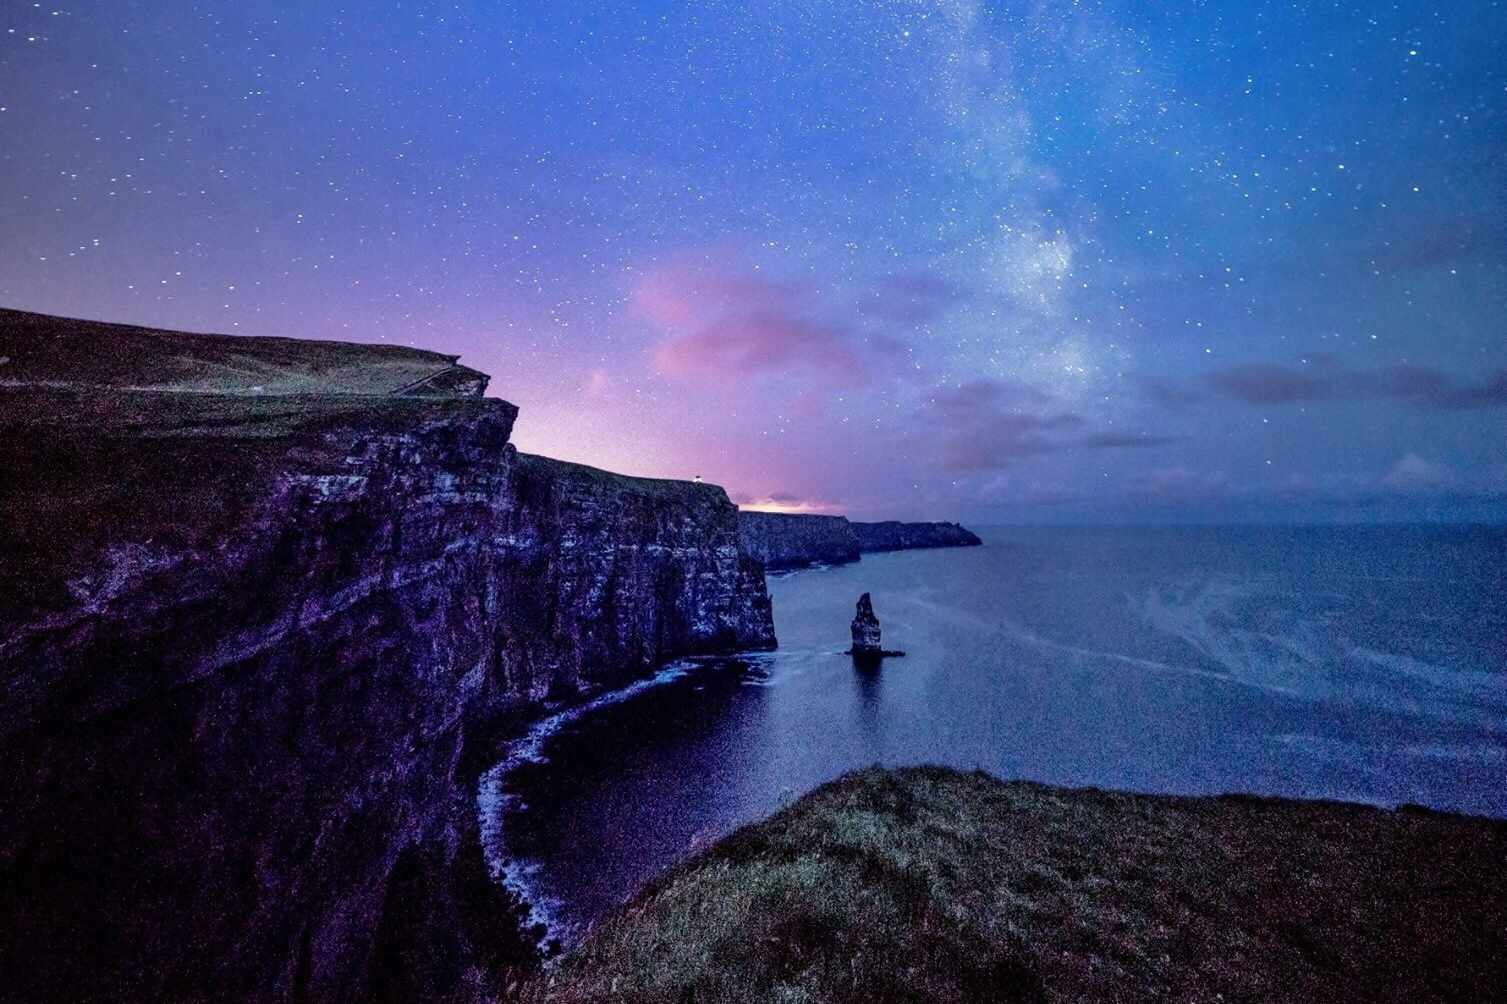 Stars and pink clouds over ocean and rocky cliffs